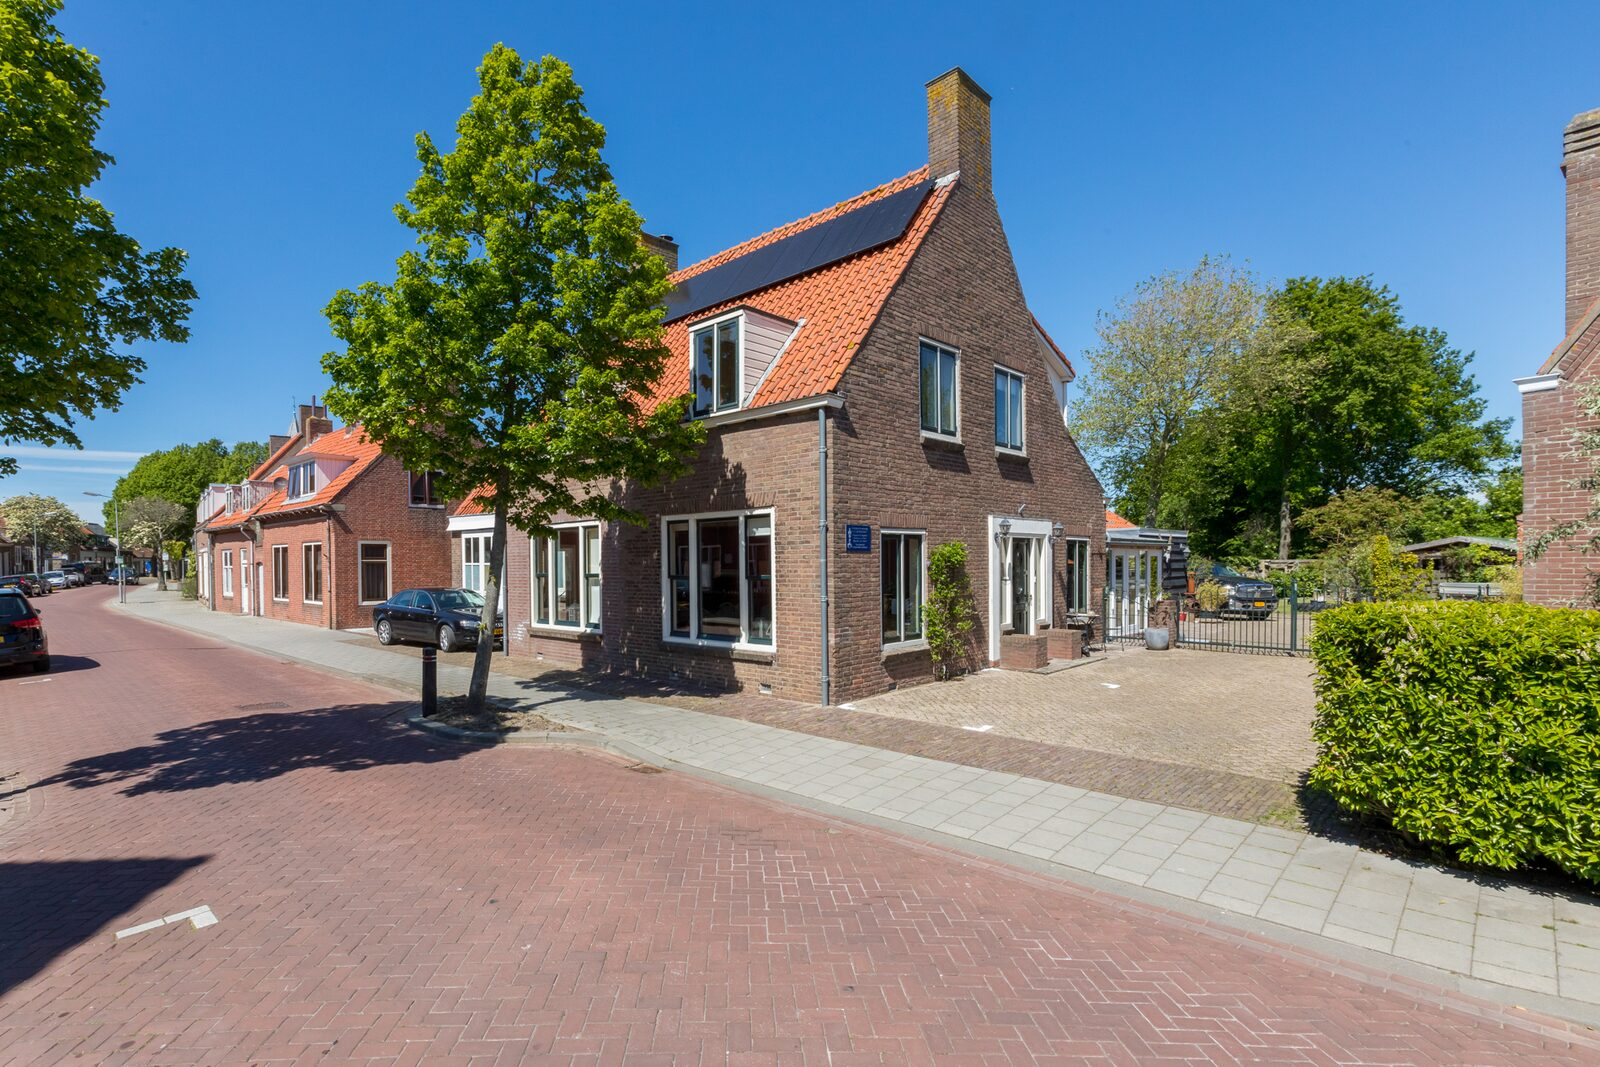 Holidayhouse - Dorpsstraat 14 | Biggekerke